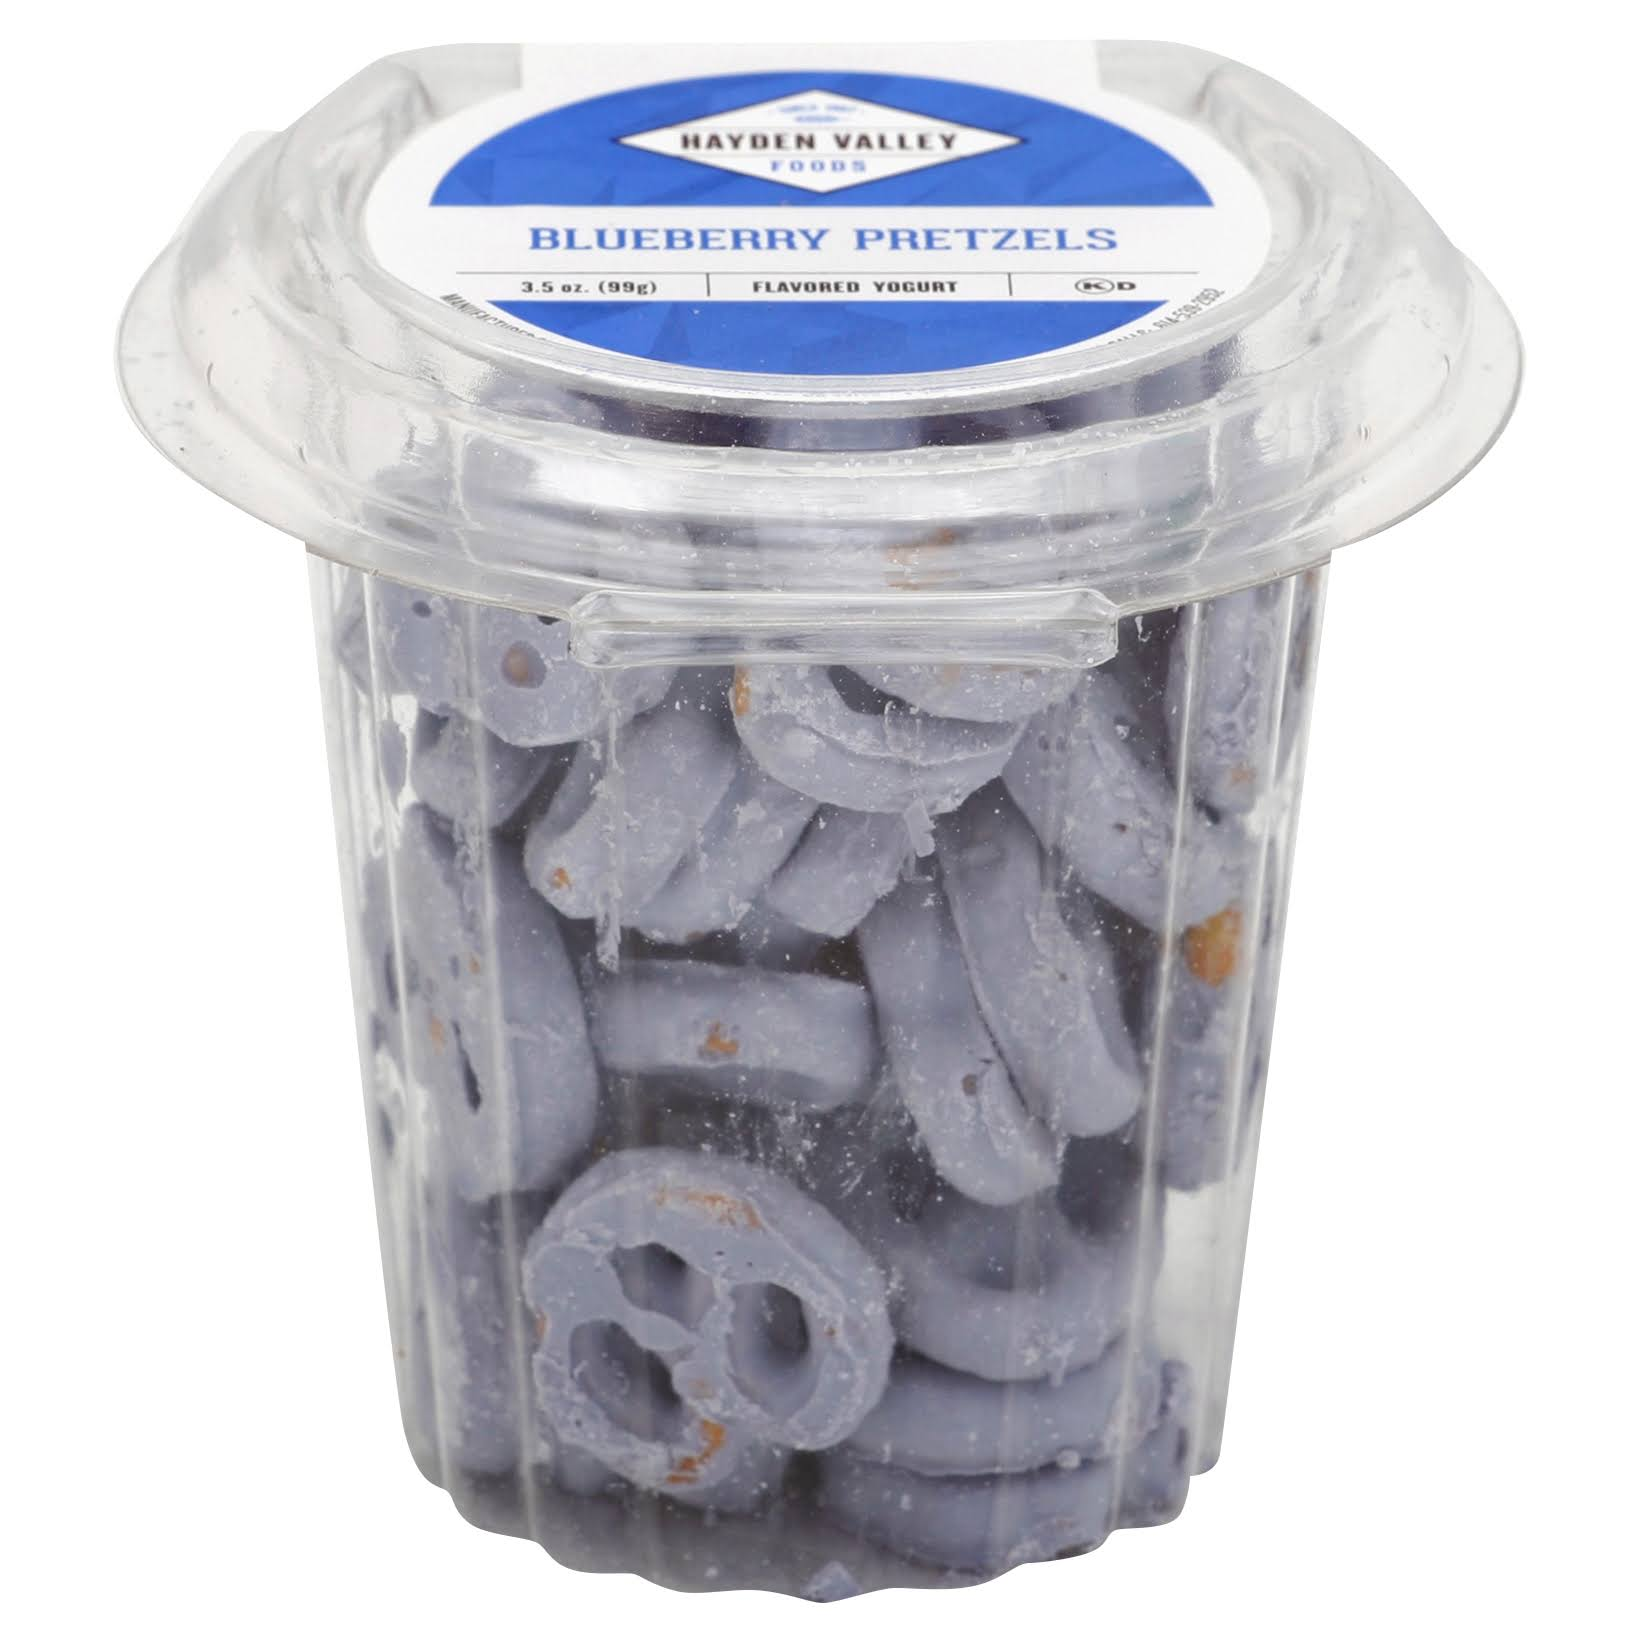 Hayden Valley Pretzels, Blueberry Flavored Yogurt - 3.5 oz